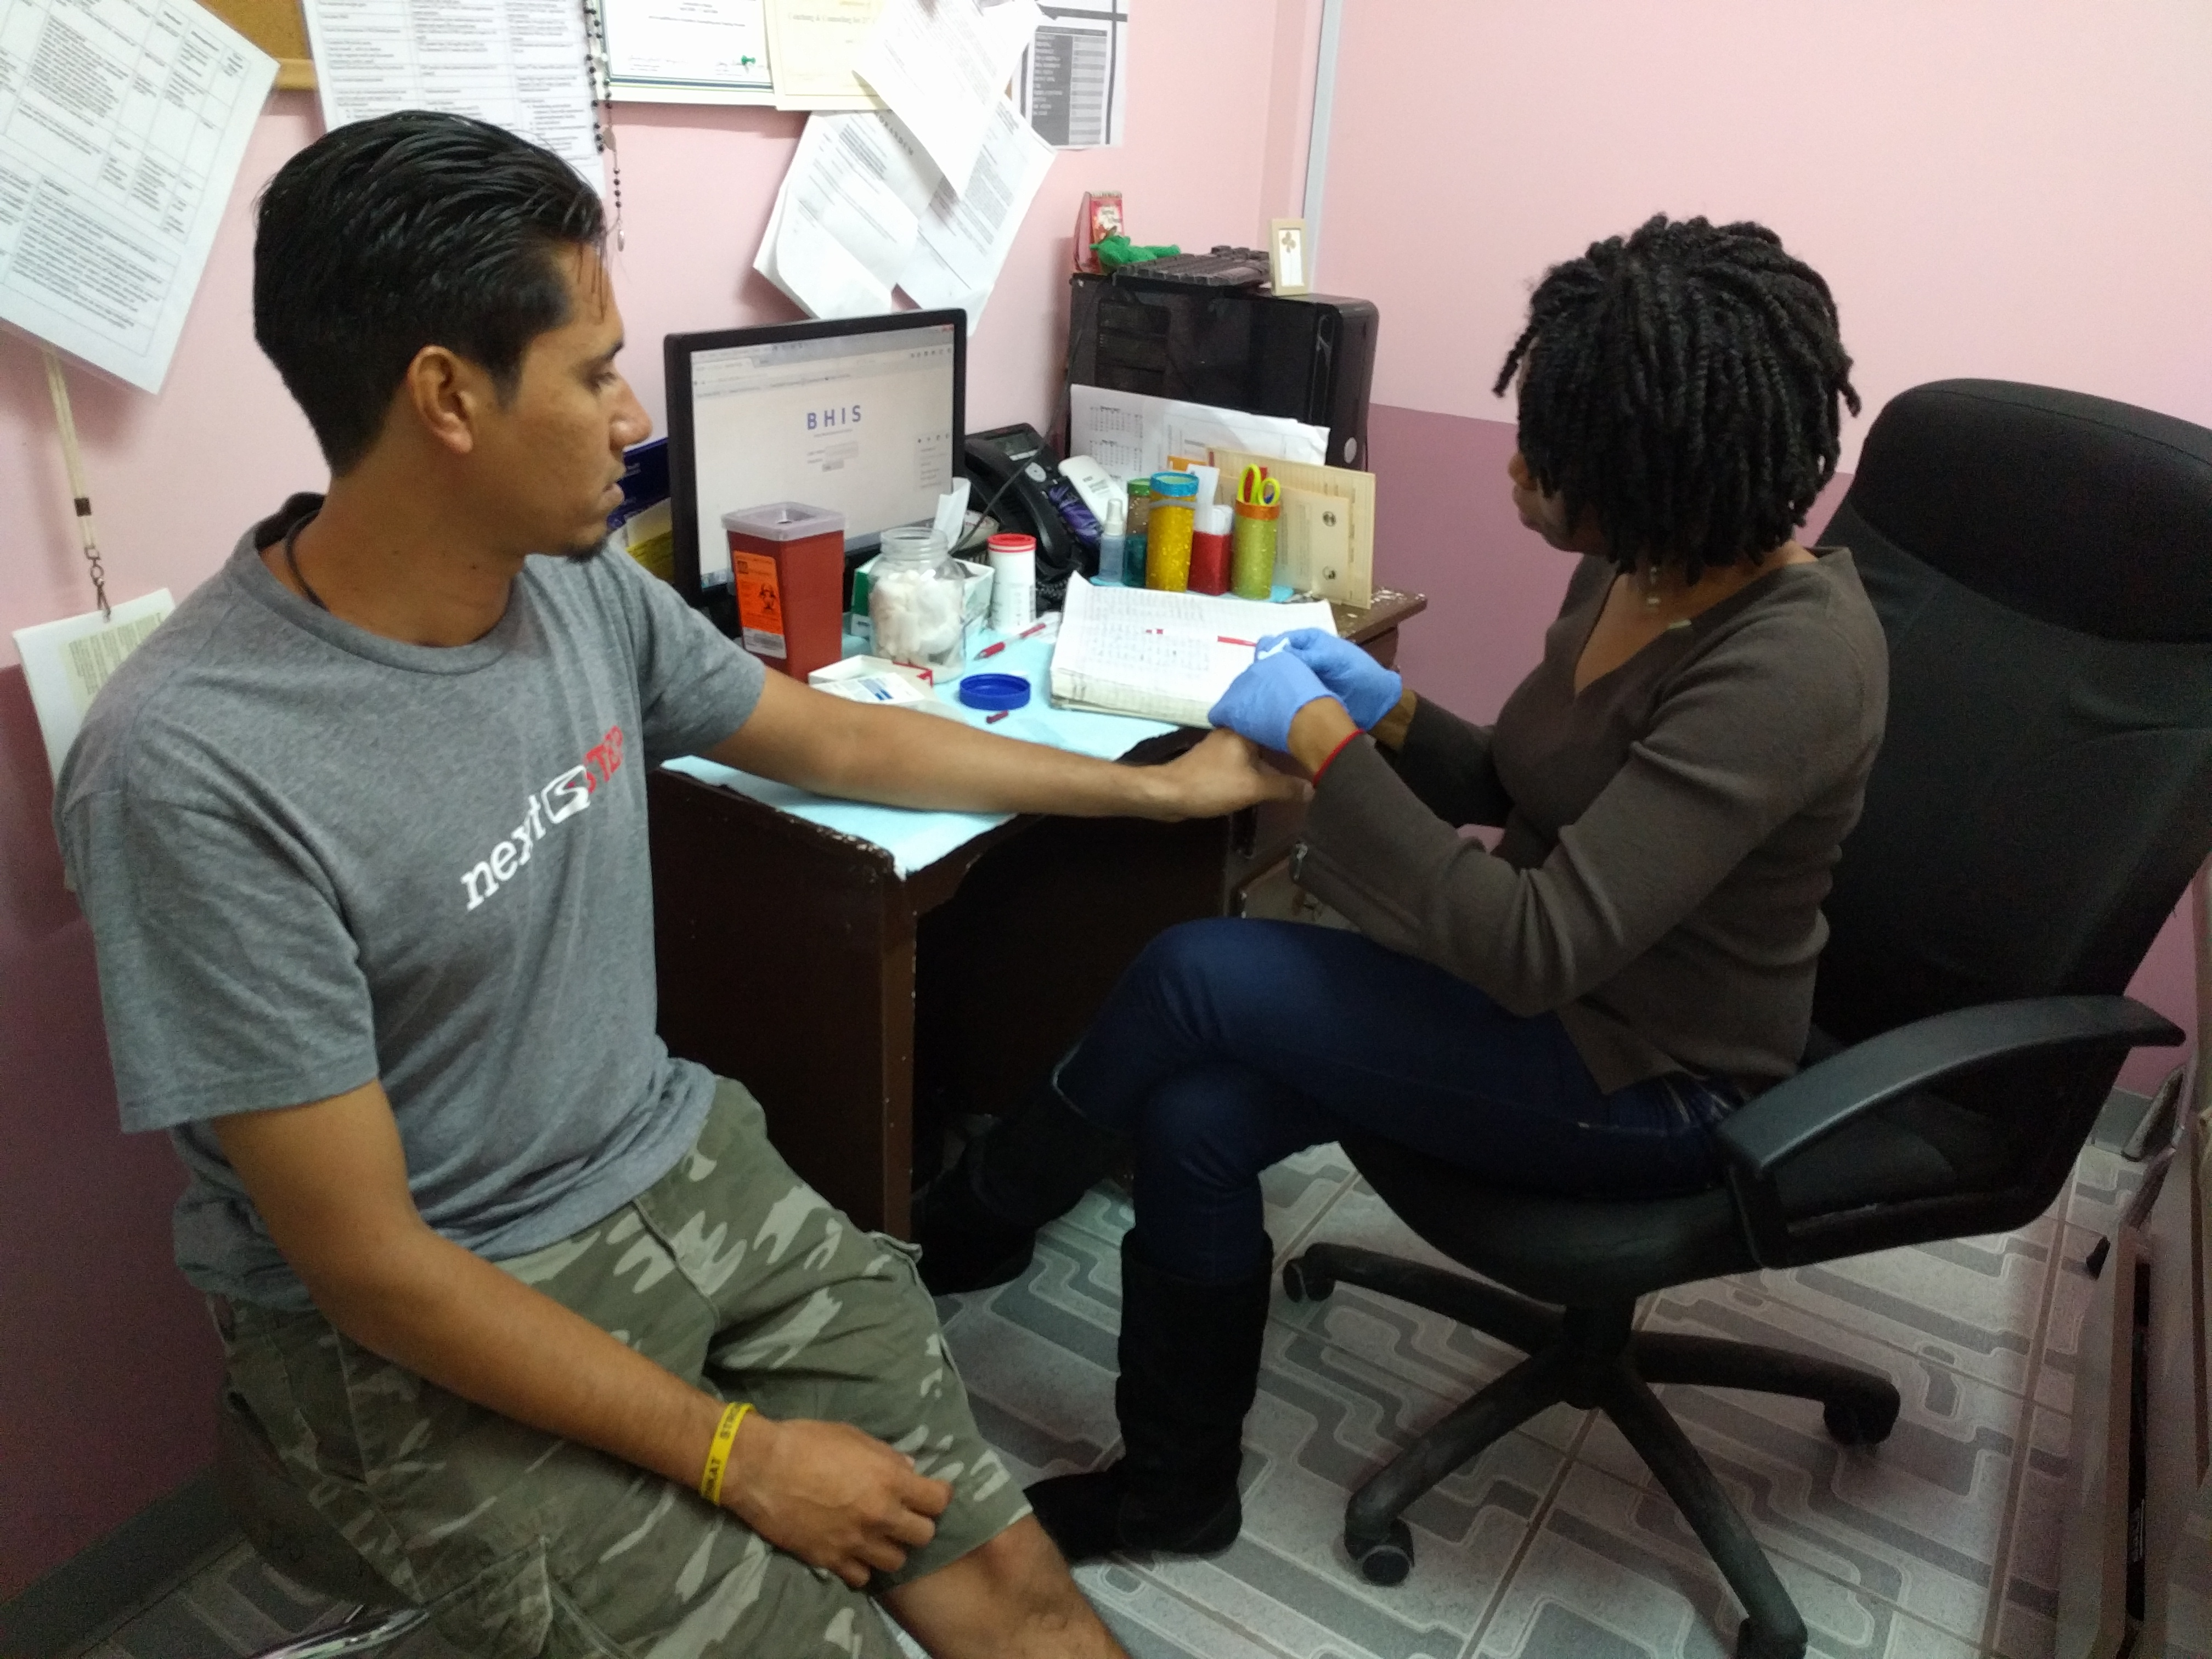 all-donors-get-screened-to-make-sure-their-blood-is-healthy